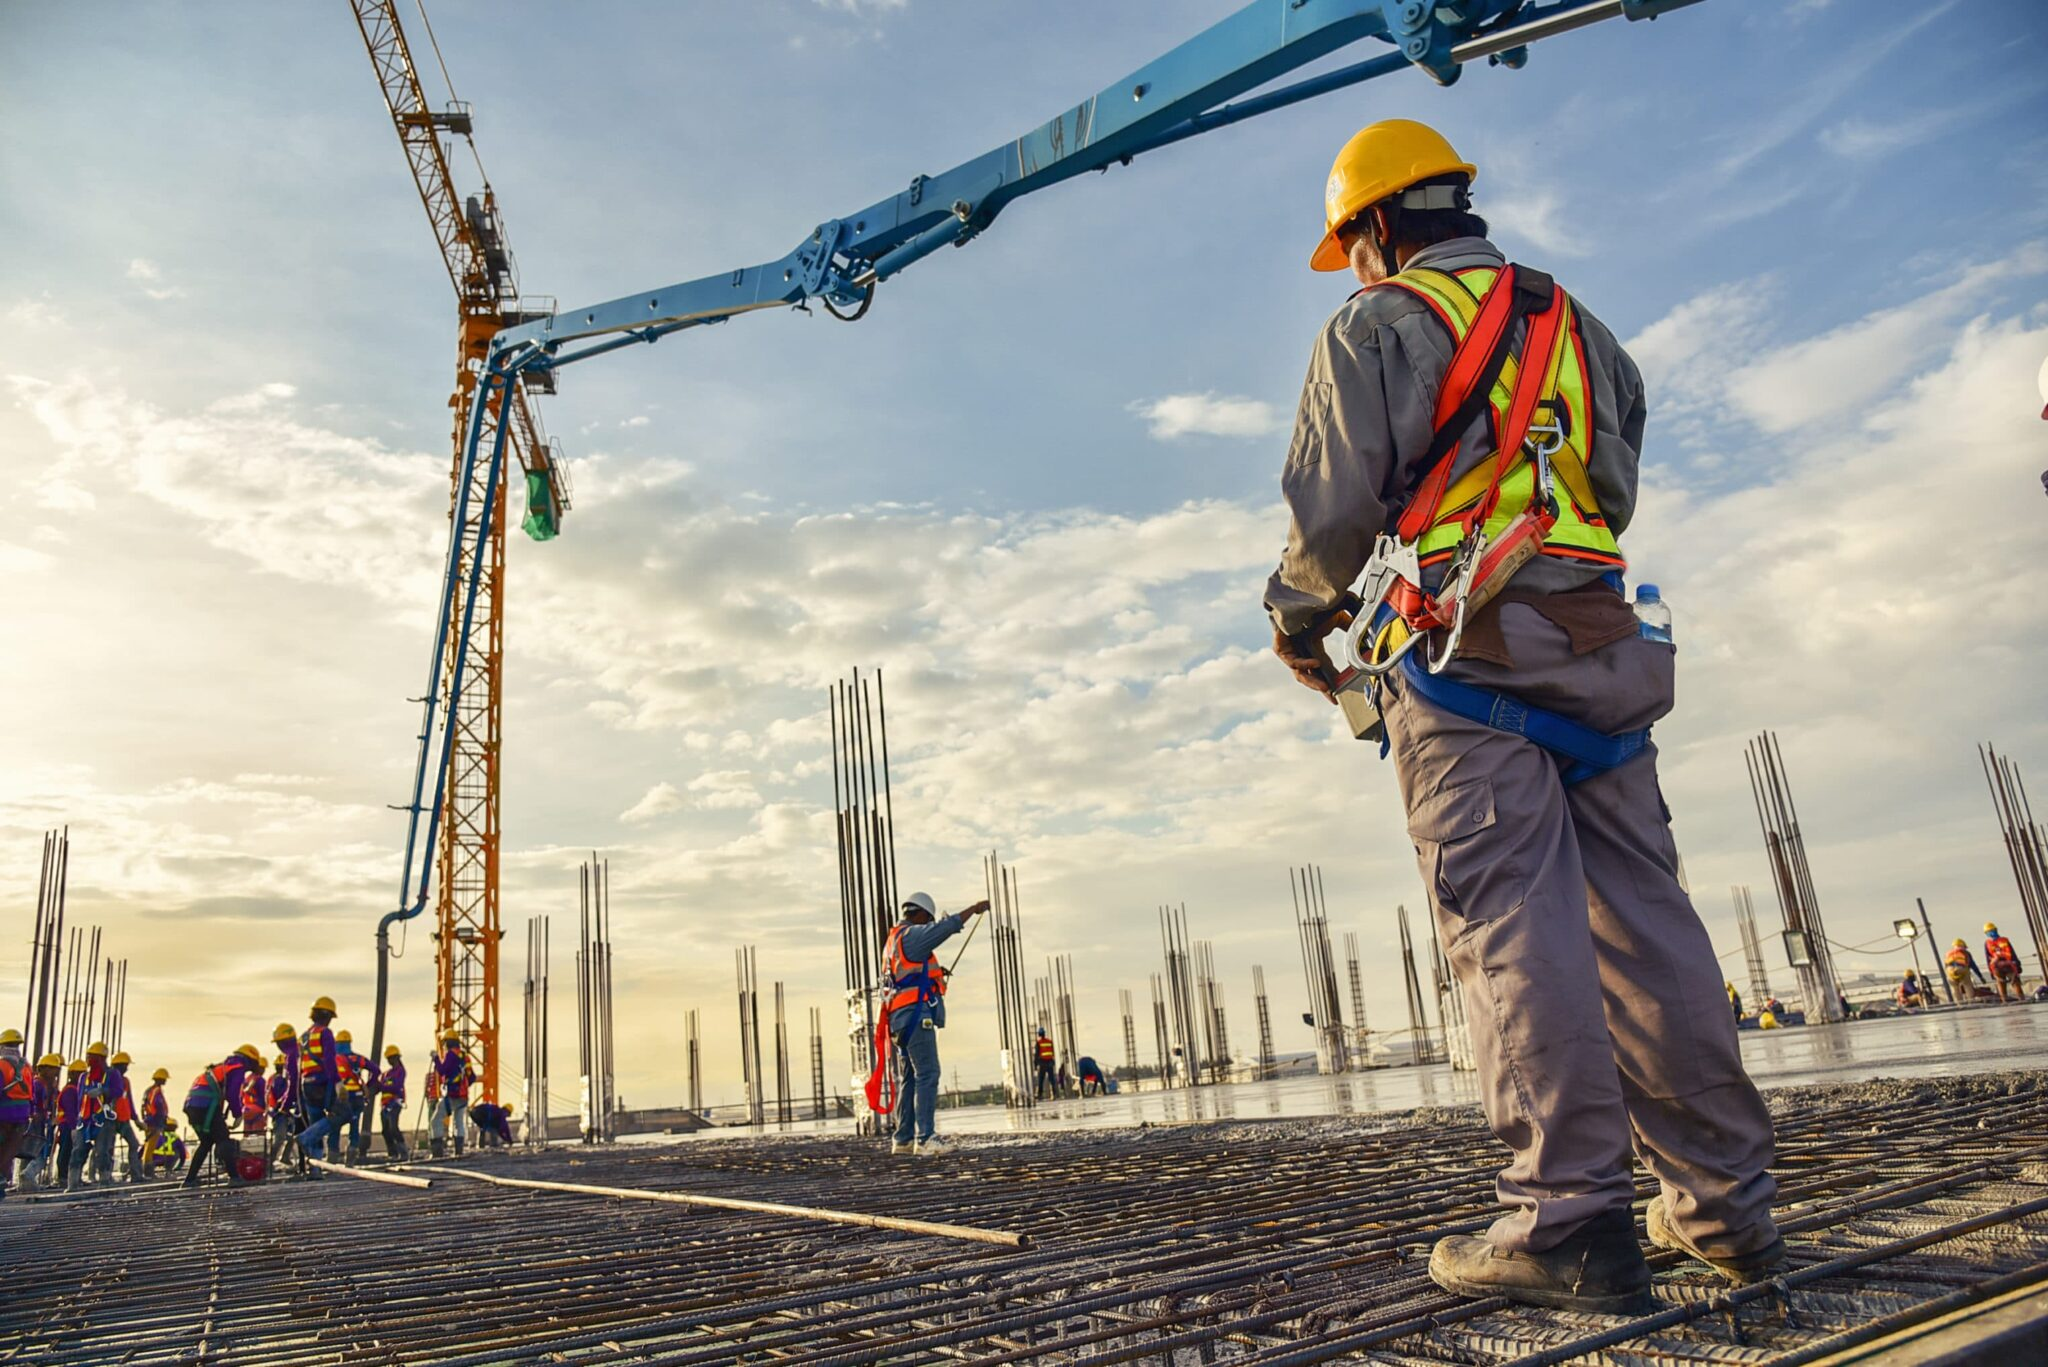 A construction worker is shown on a construction site.